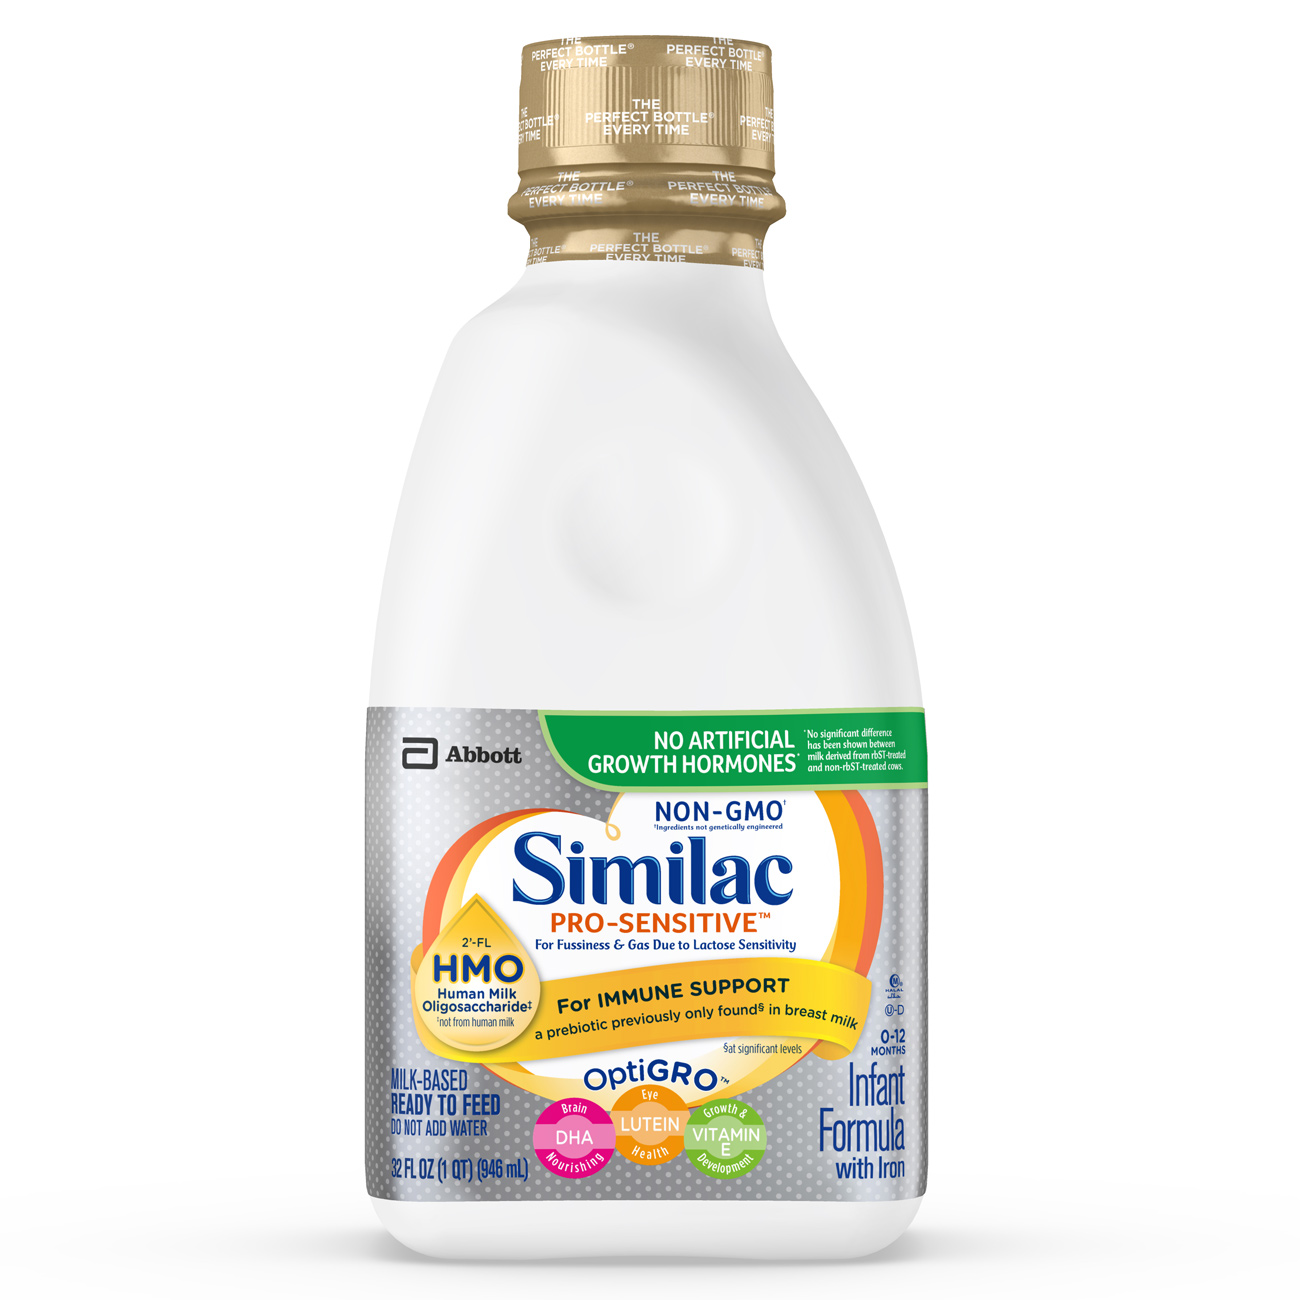 Similac Pro-Sensitive Infant Formula with 2'-FL Human Milk Oligosaccharide (HMO) for Immune Support, Ready to Feed, 32 fl oz